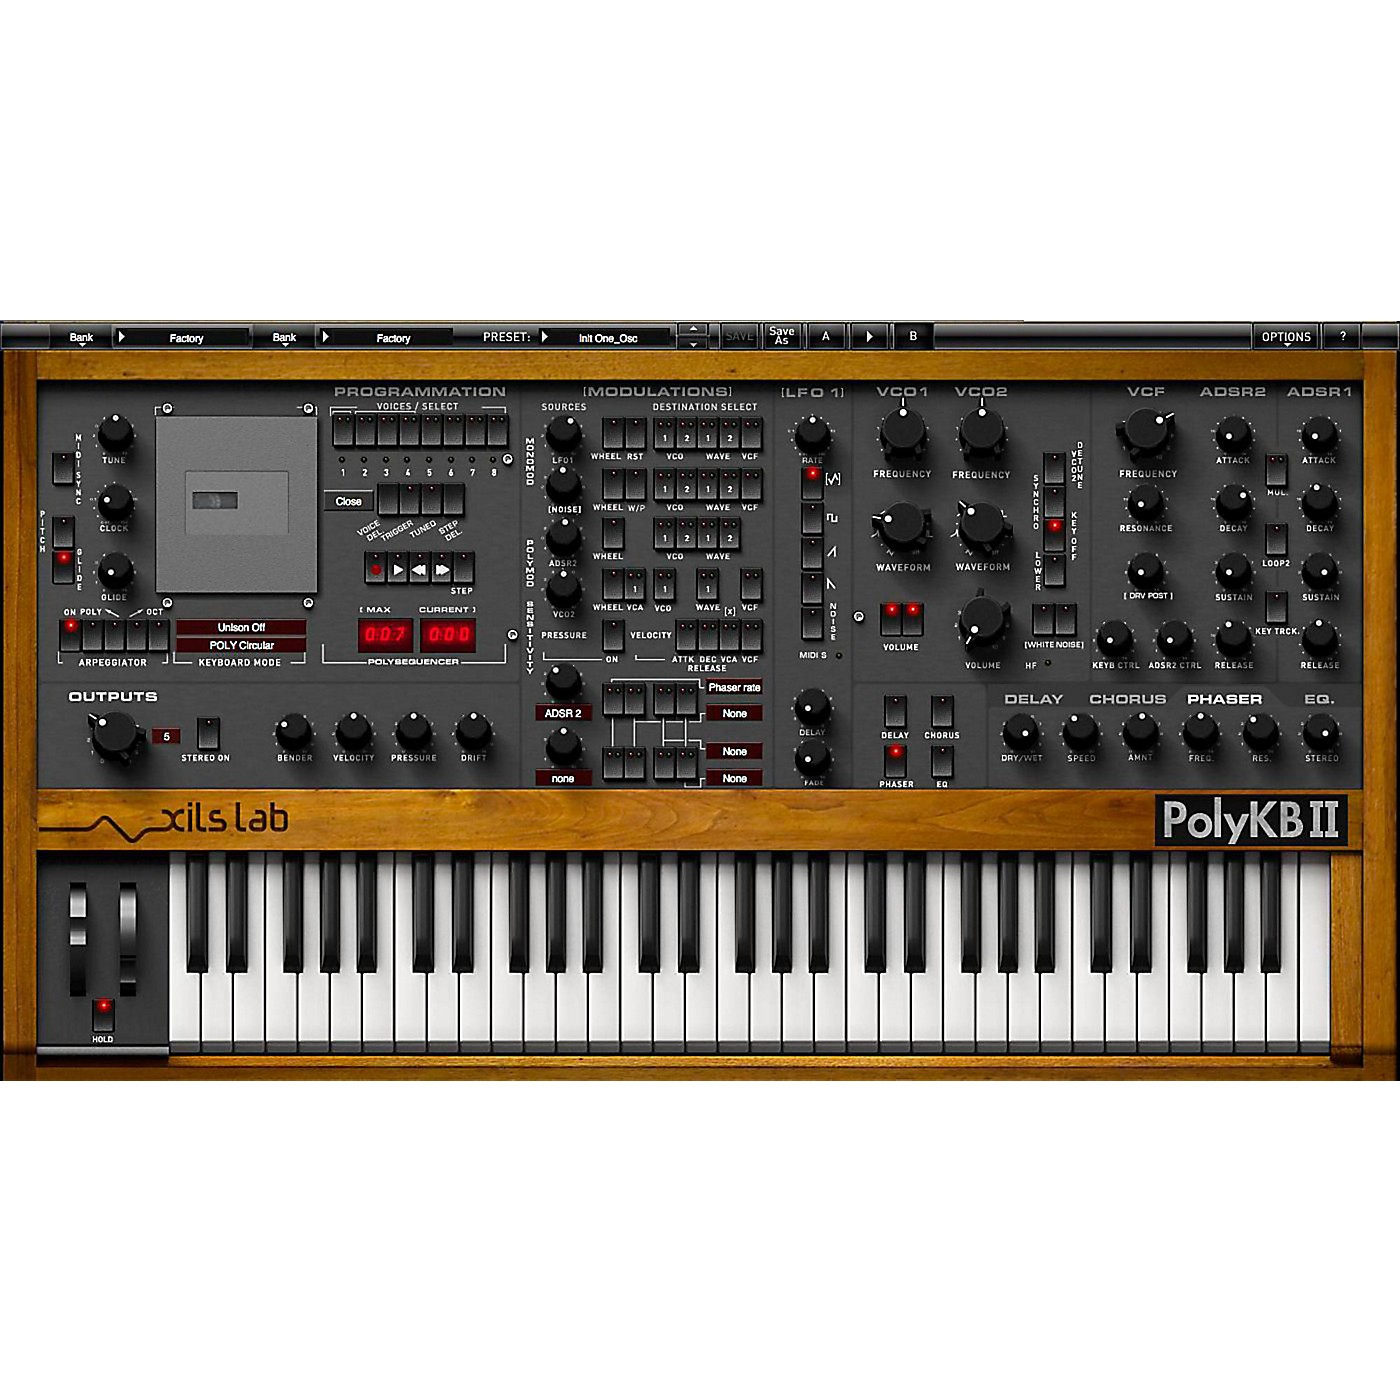 XILS lab PolyKB II Morphing Analog Synthesizer Software Download thumbnail